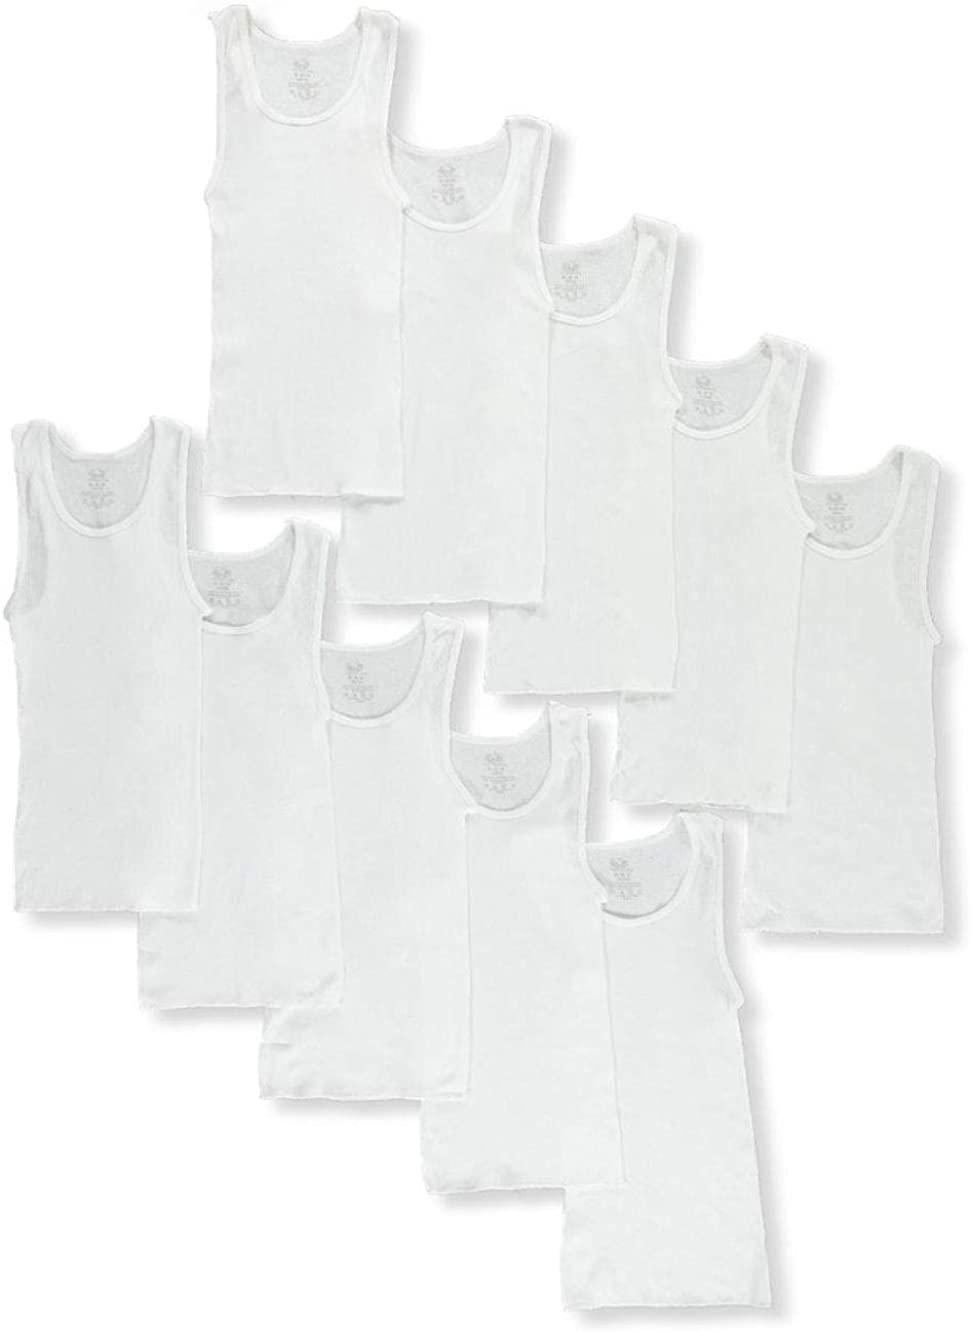 Fruit of the Loom Boys 10-Pack A-Shirts